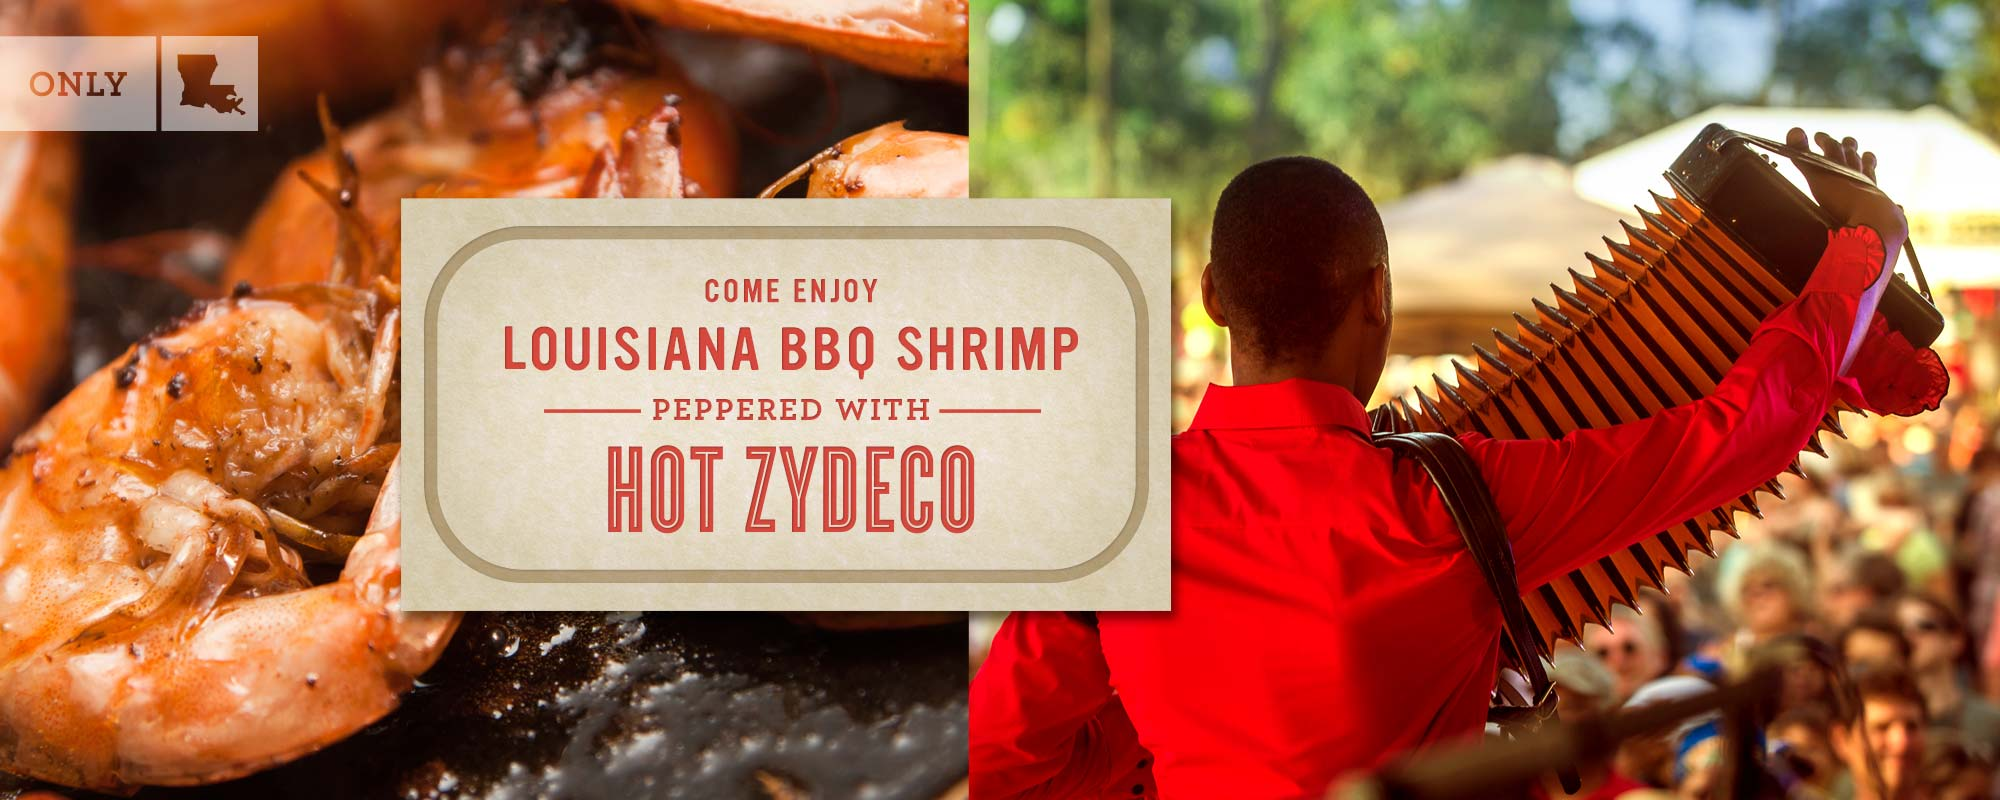 Come enjoy Louisiana BBQ shrimp peppered with hot Zydeco